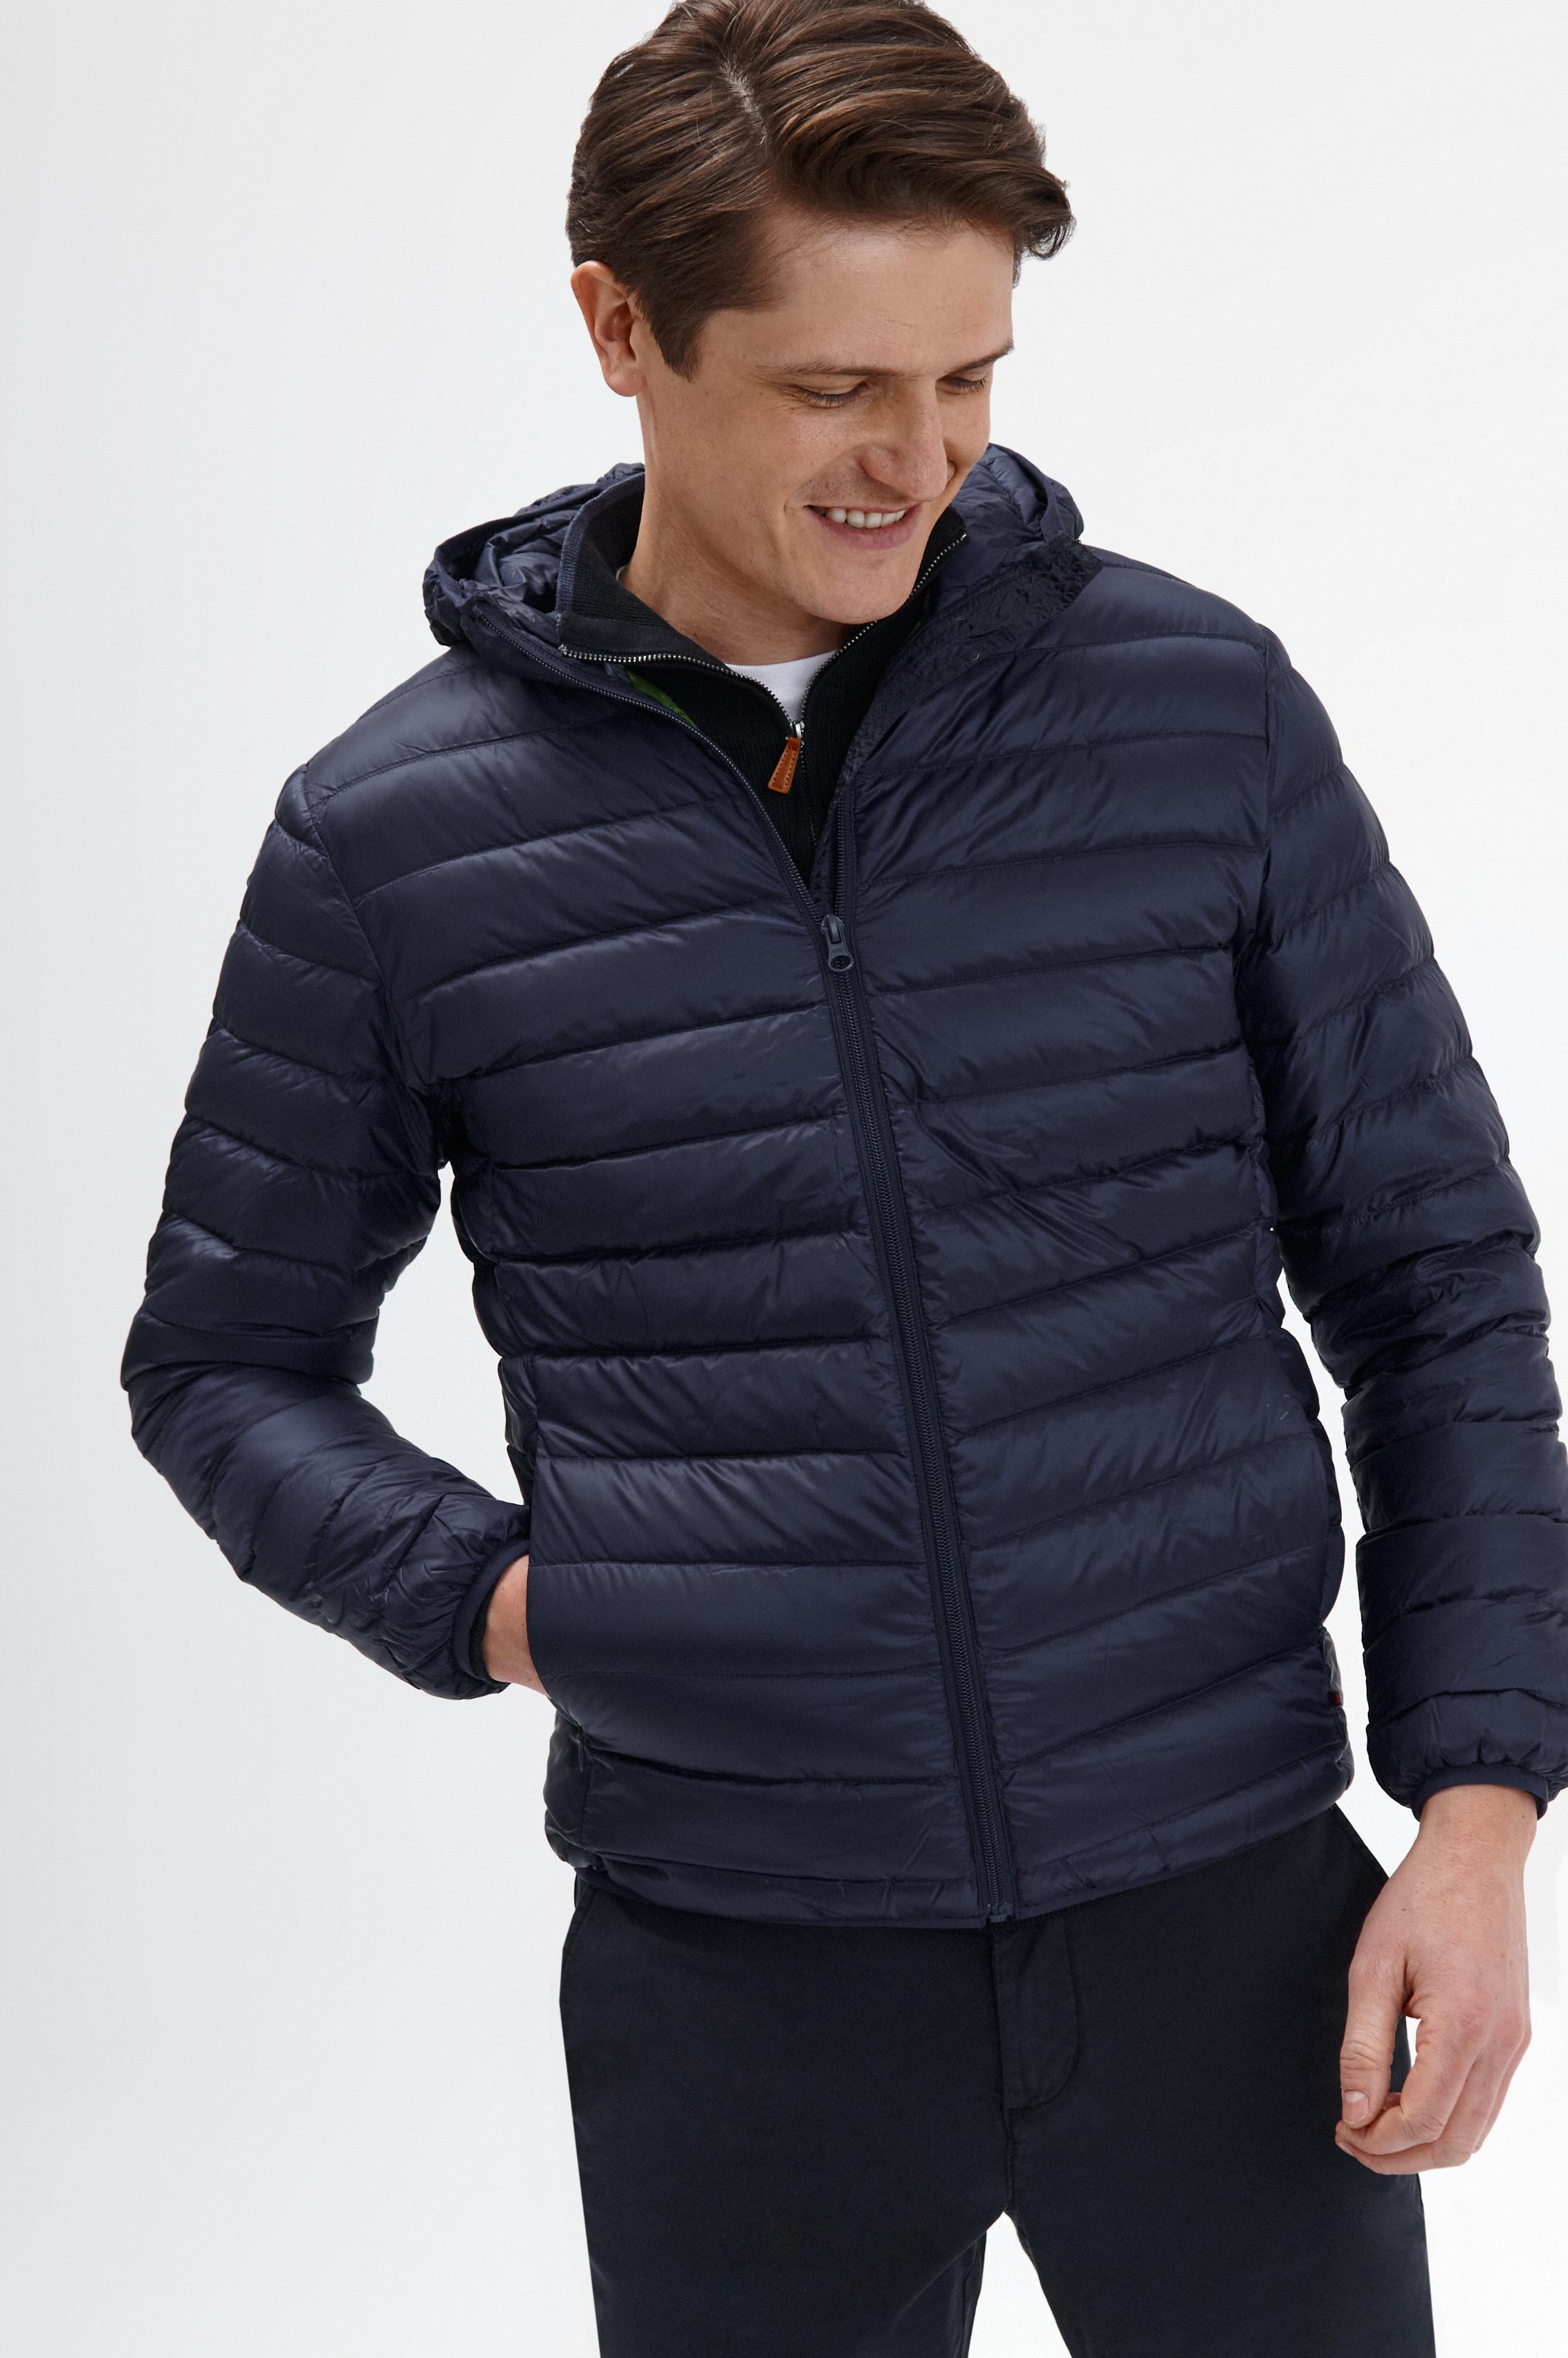 MEN'S QUILTED JACKET ANGELO 1